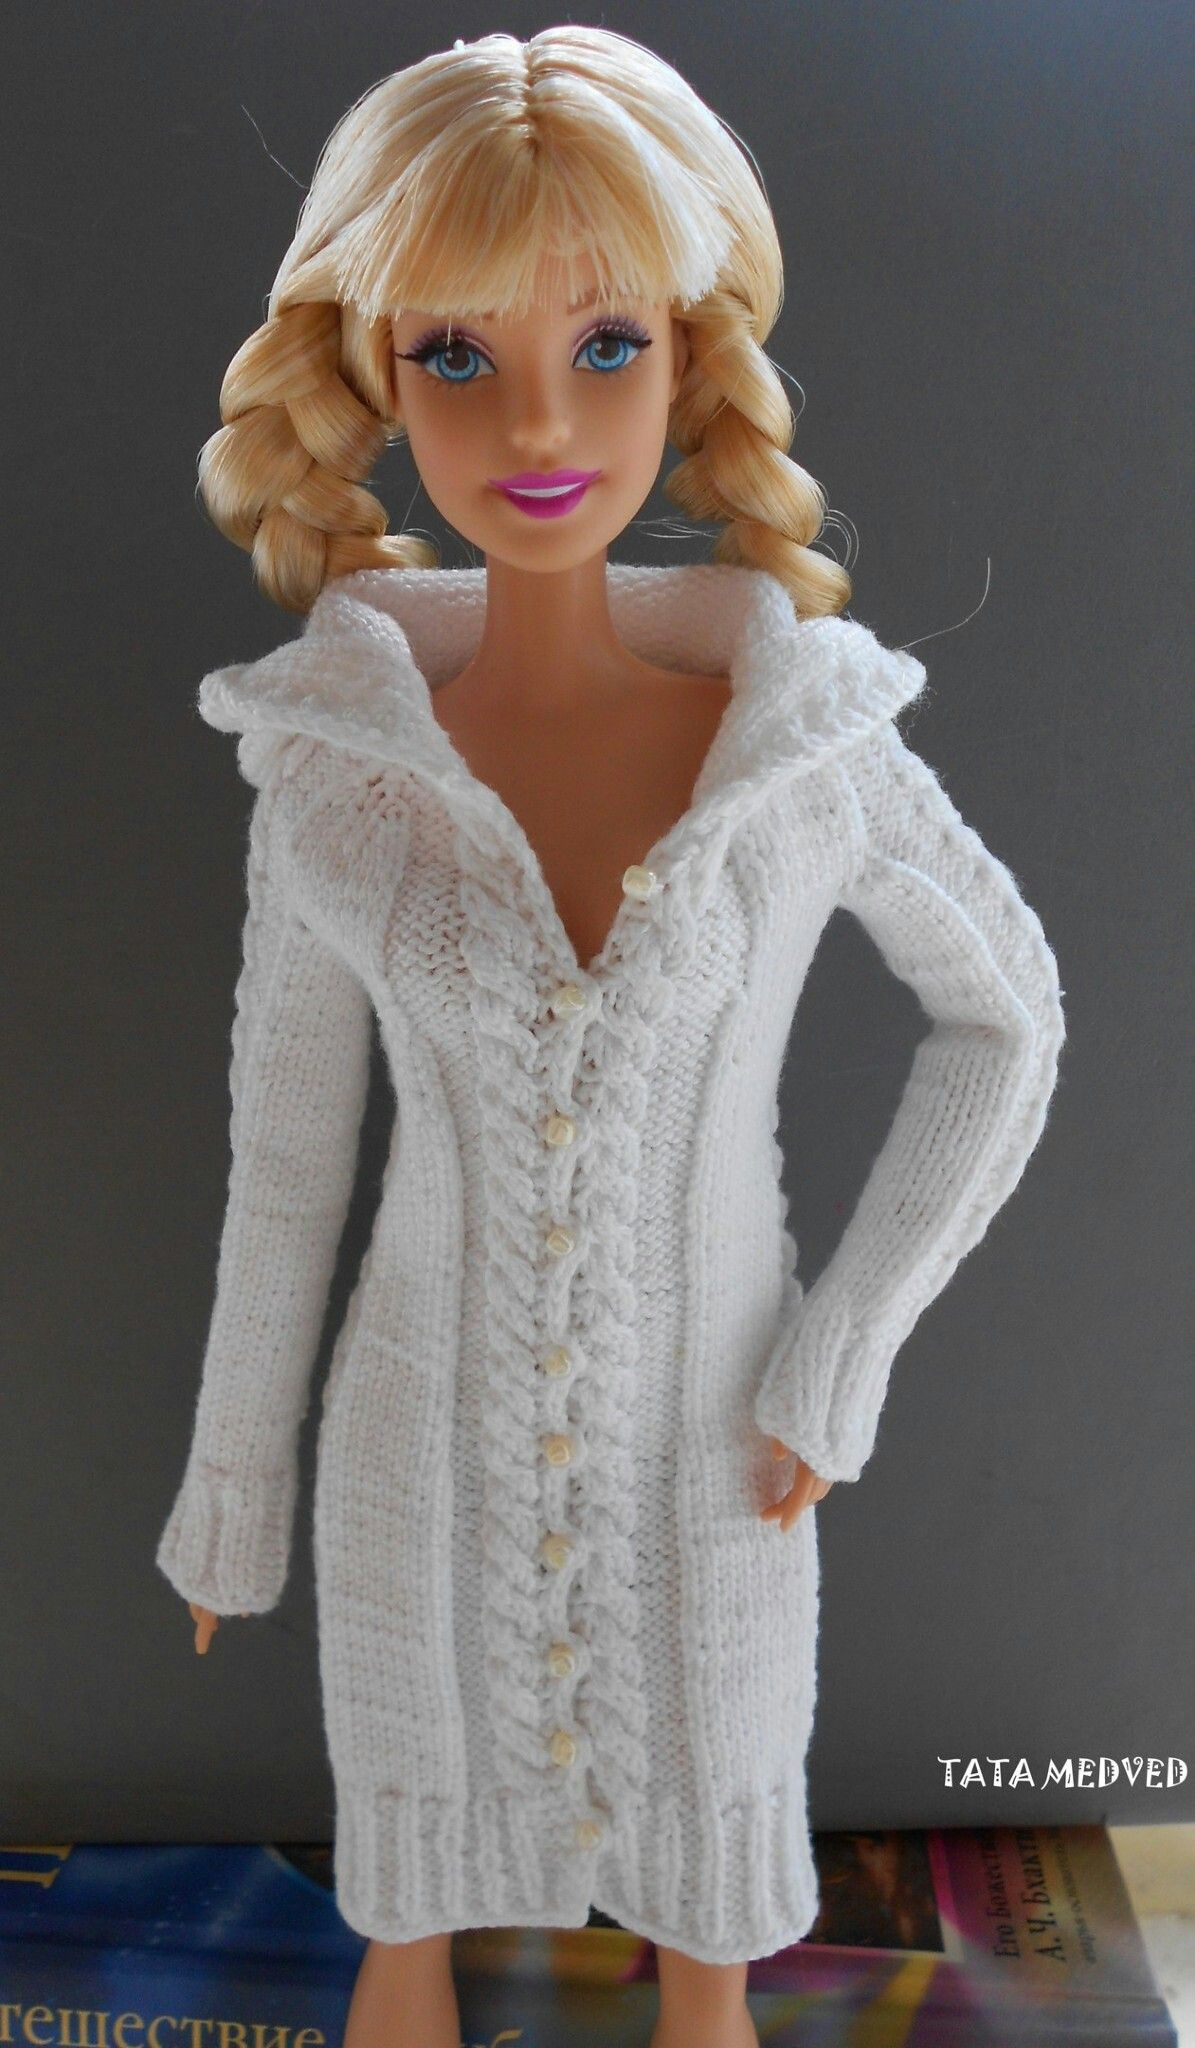 Pin von Ligia Torres auf Looks Barbie | Pinterest | Barbiekleidung ...